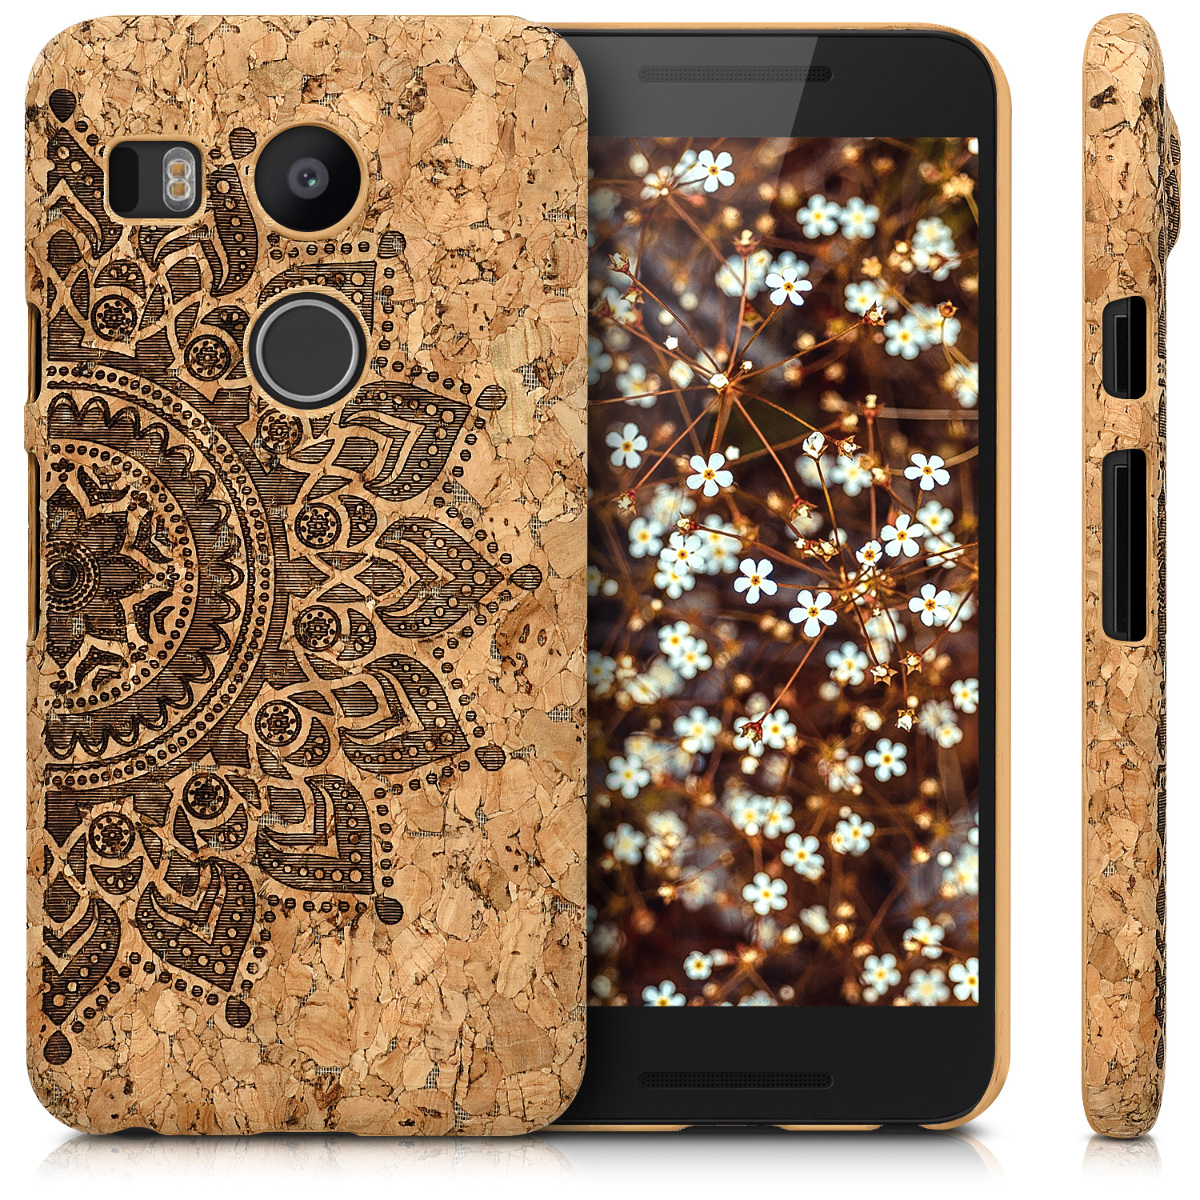 kwmobile-HARD-CASE-AVEC-LIEGE-POUR-LG-GOOGLE-NEXUS-5X-COVER-HOUSSE-PROTECTION